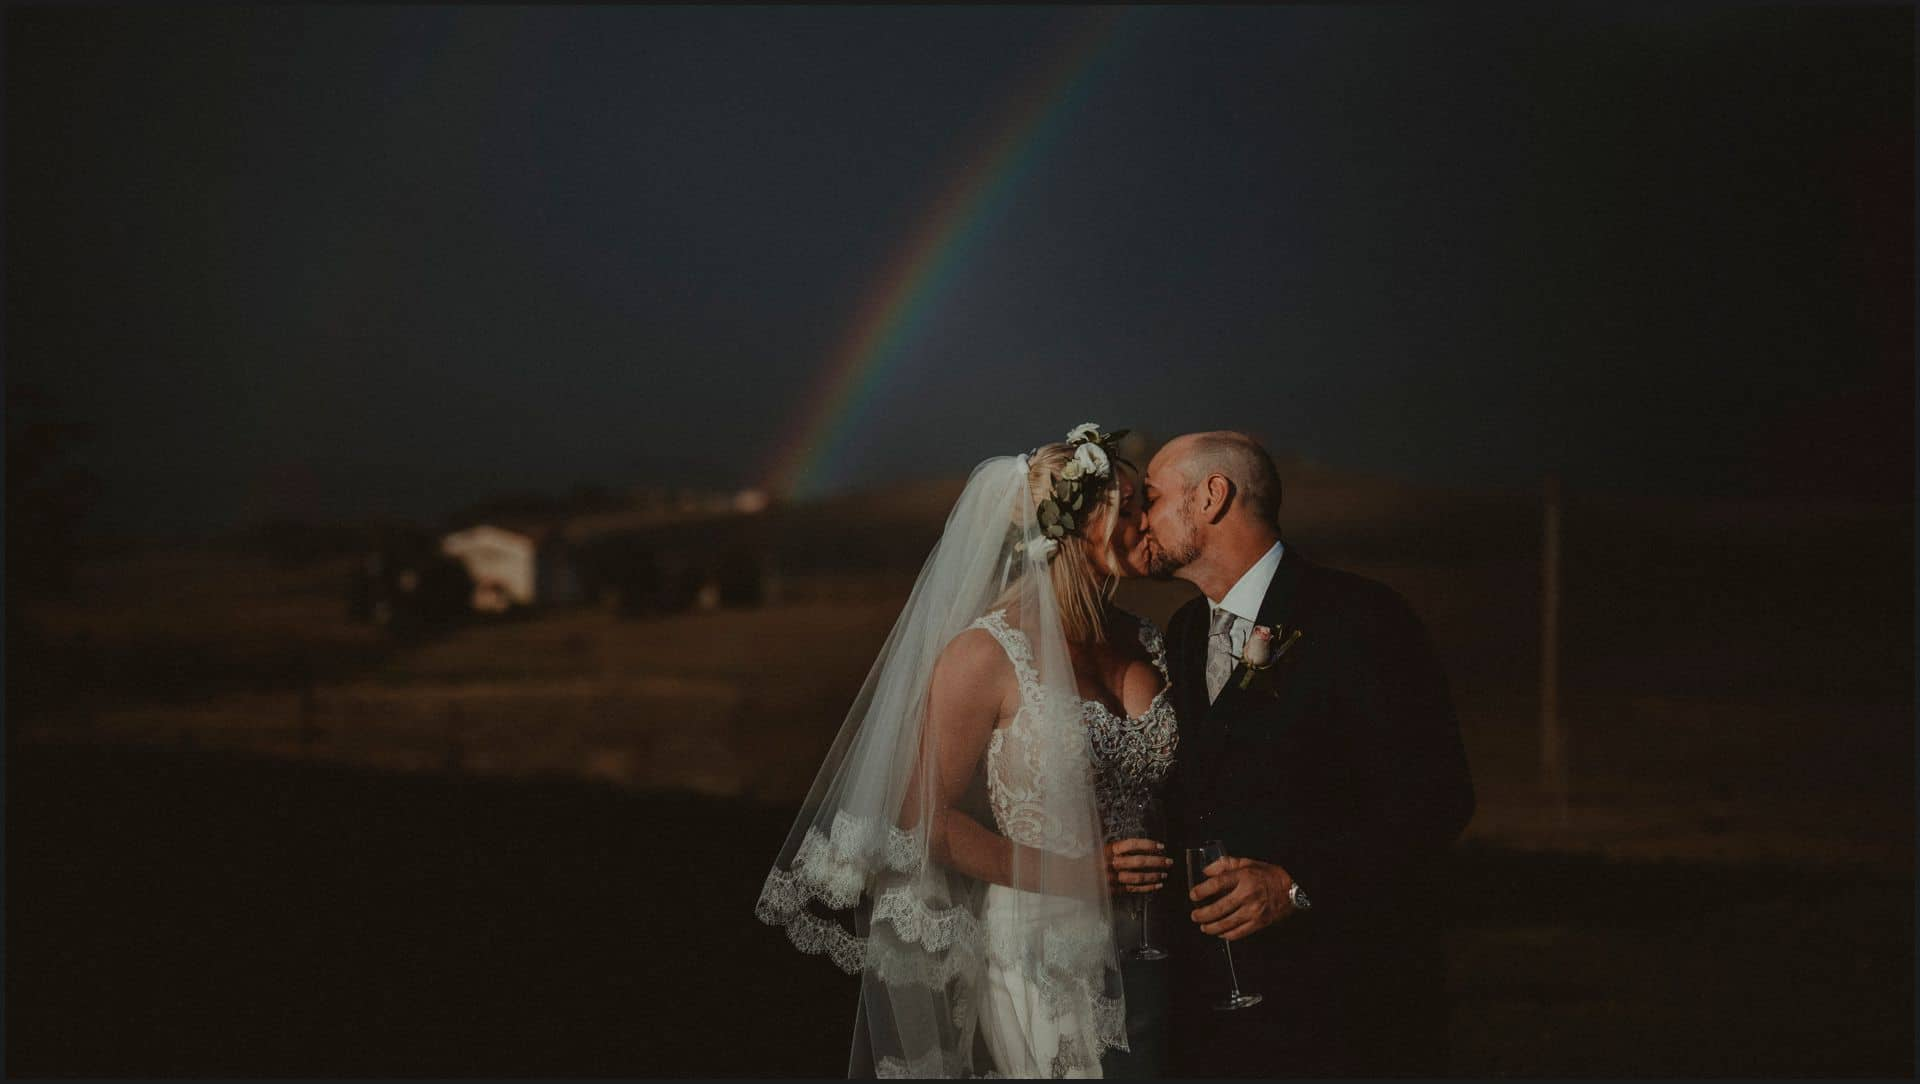 locanda in tuscany, bride, groom, val d'orcia, wedding, tuscany, kiss, rainbow